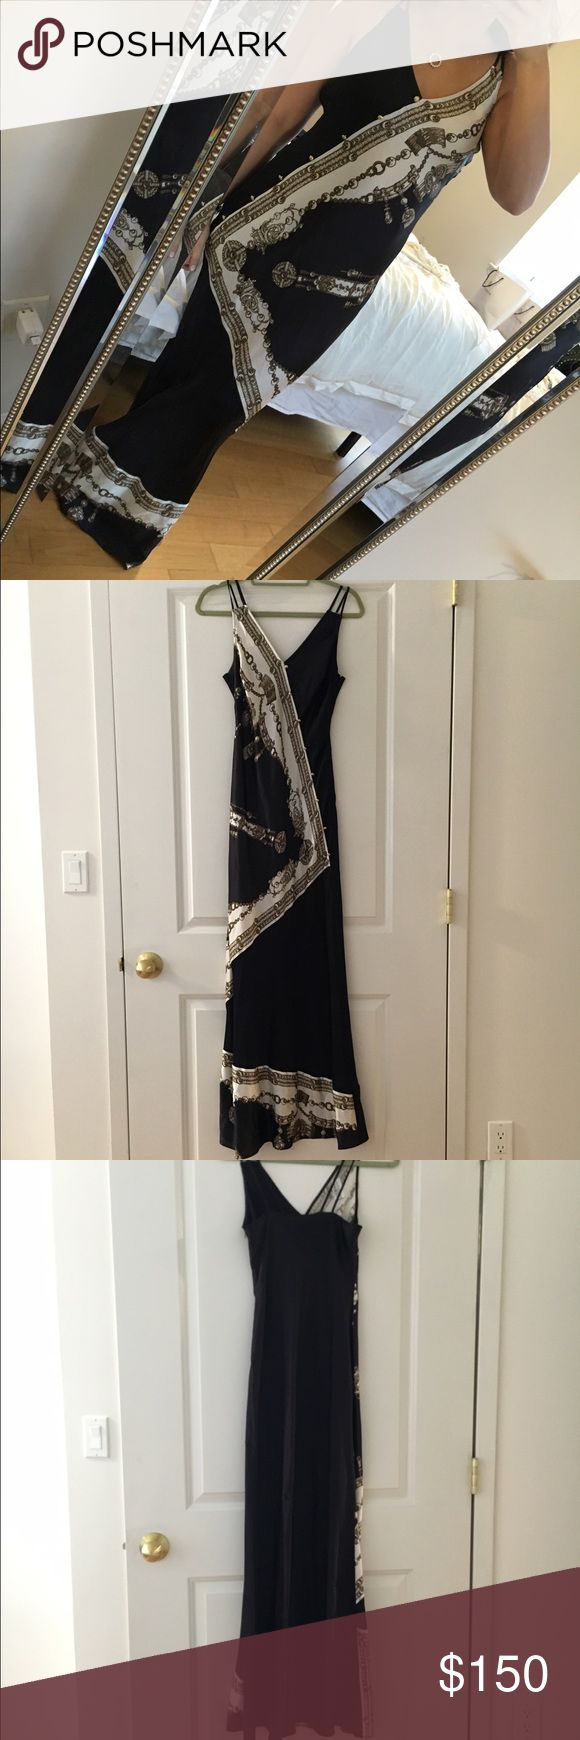 Marchessa voyage silk gown Marchessa voyage black treasure silk scarf maxi dress. Never worn! New with tags. Sooooo soft perfect for a vacation to a gorgeous island. marchessa Dresses